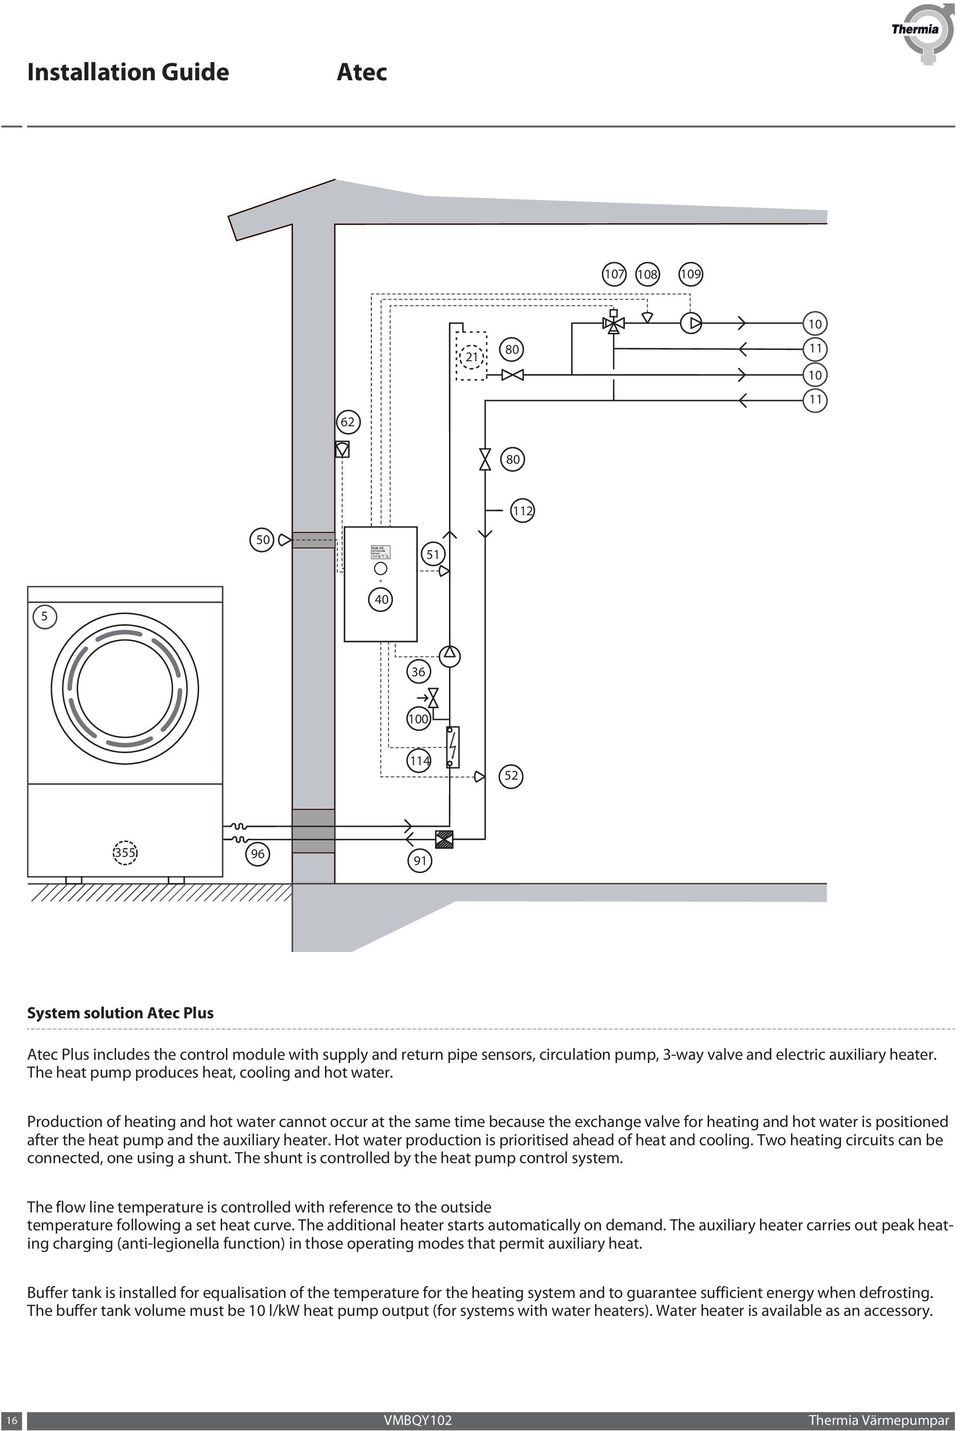 Installation Guide Atec Pdf Highoutput Compressors 101 Airzenith Compressor Mounting Wiring Production Of Heating And Hot Water Cannot Occur At The Same Time Because Exchange Valve